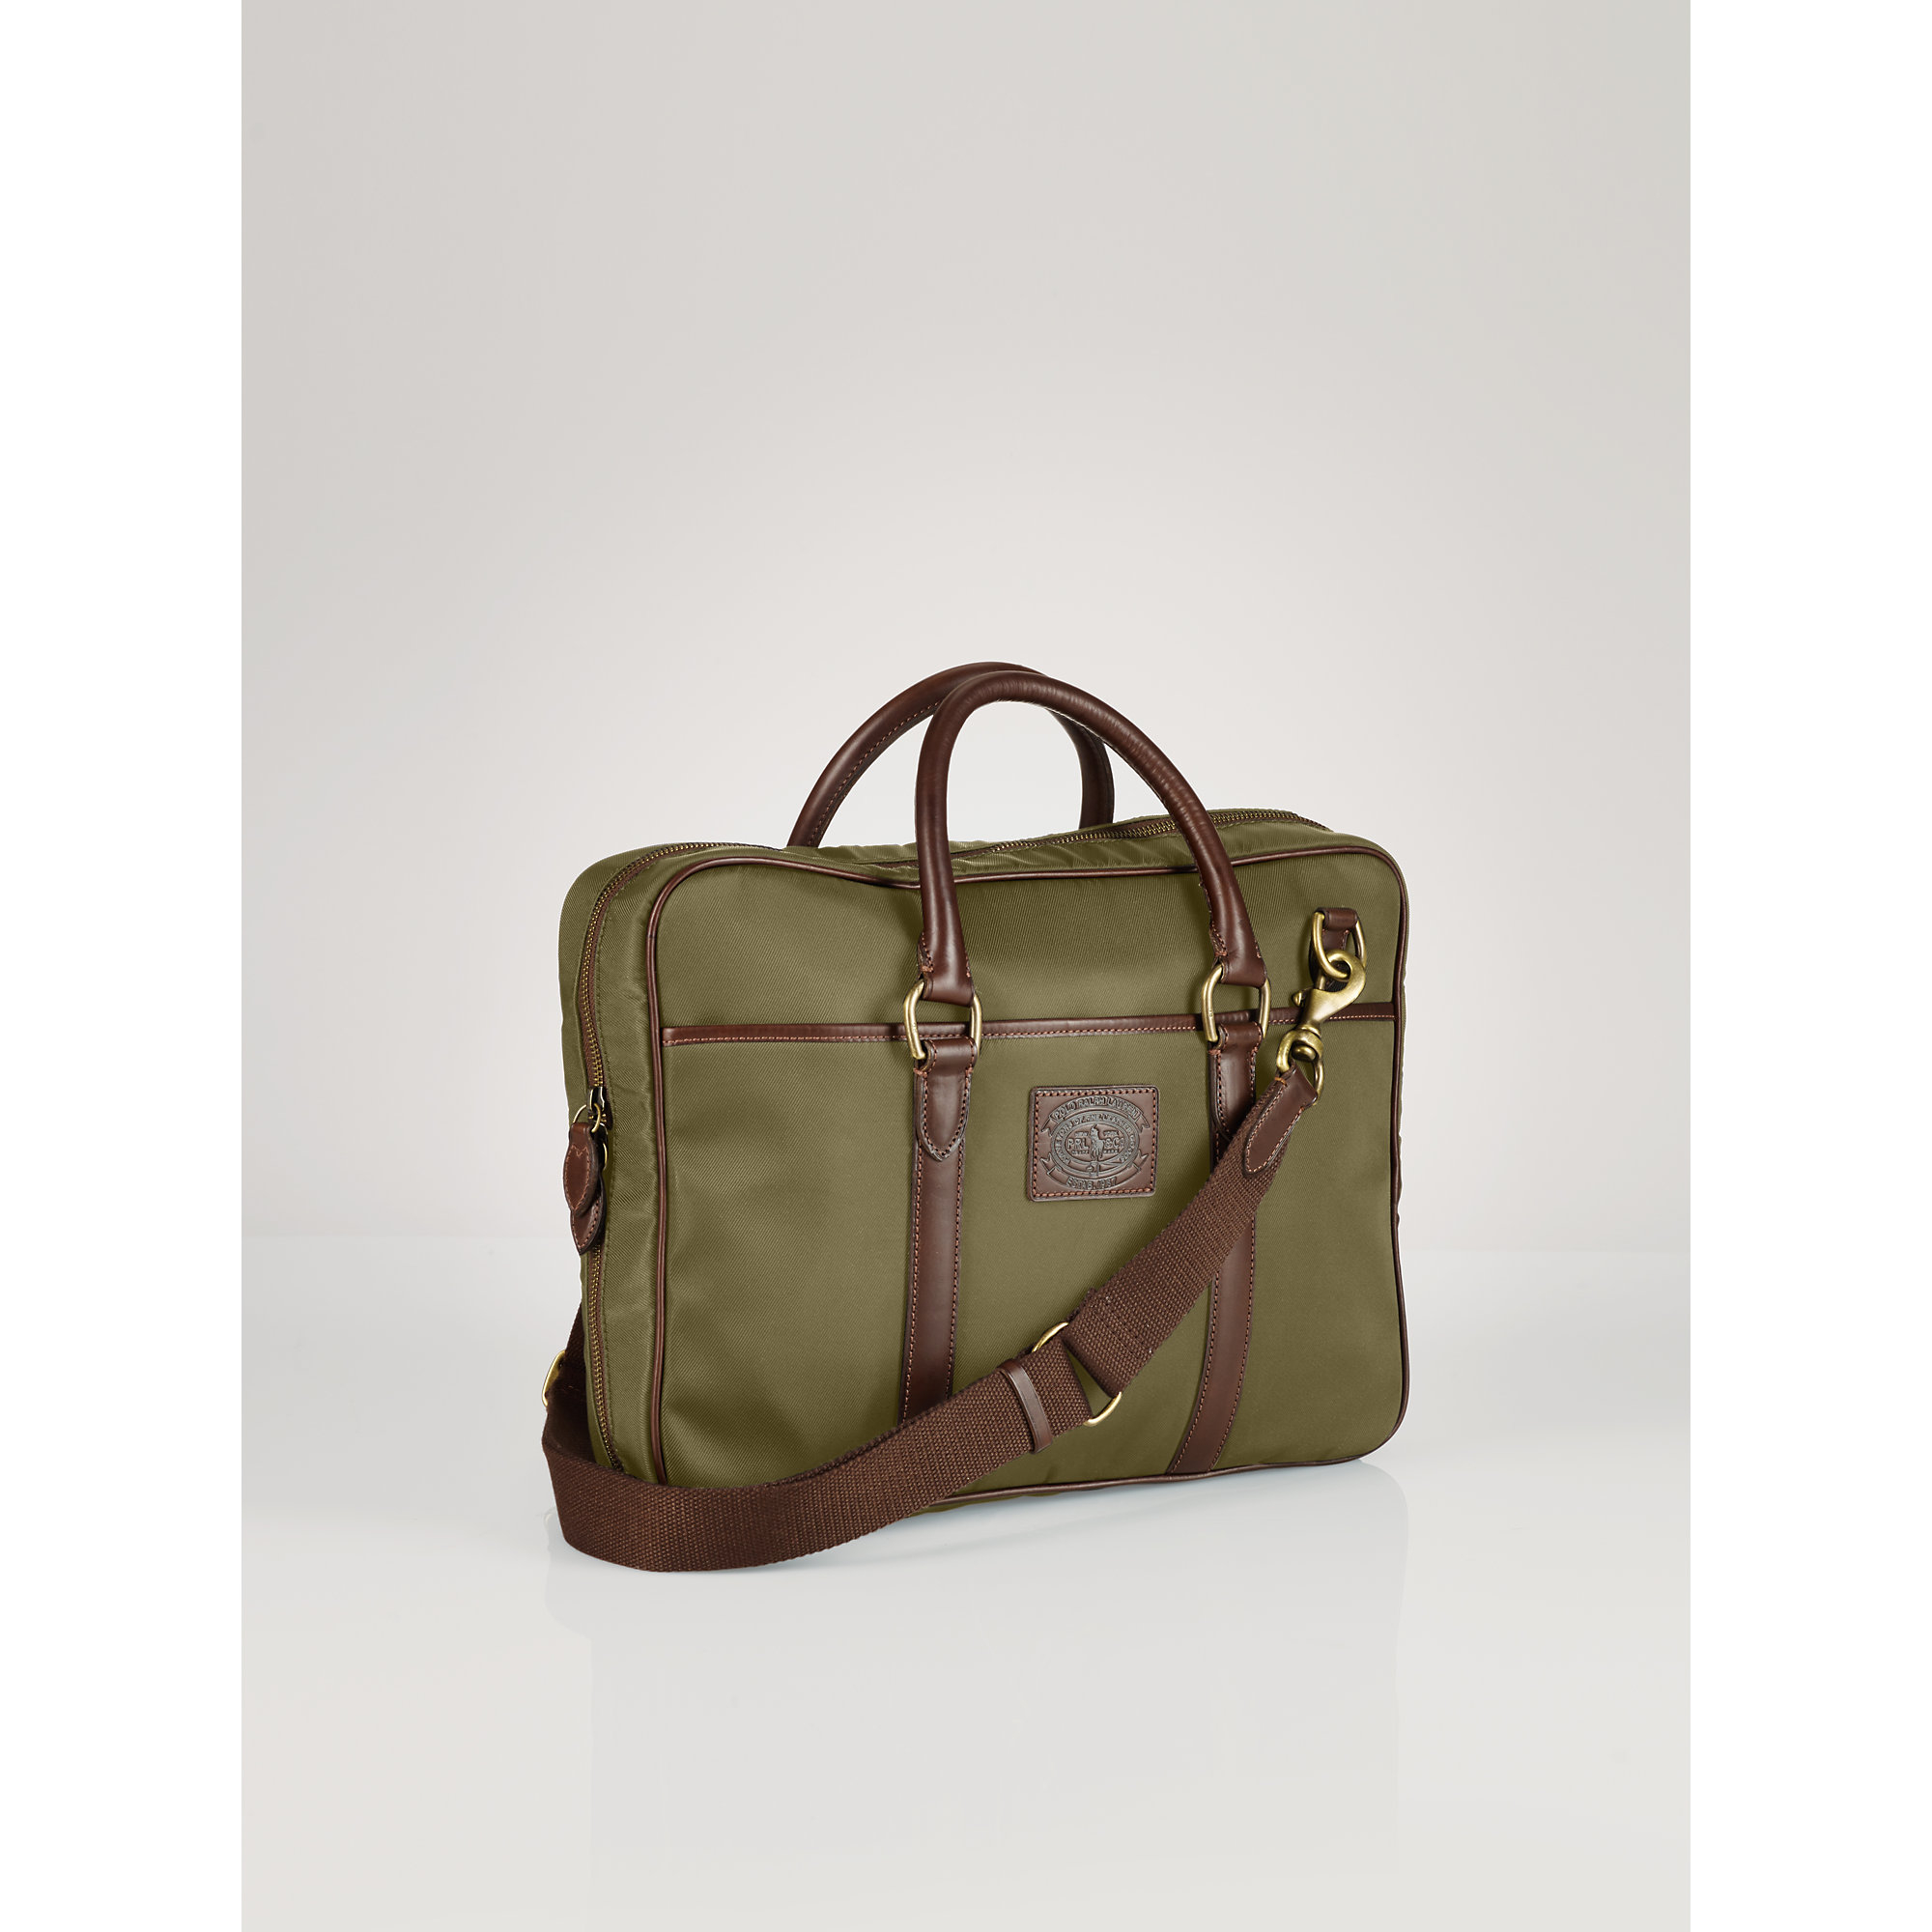 Lyst - Polo Ralph Lauren Nylon Commuter Bag in Green for Men 674e8f4875